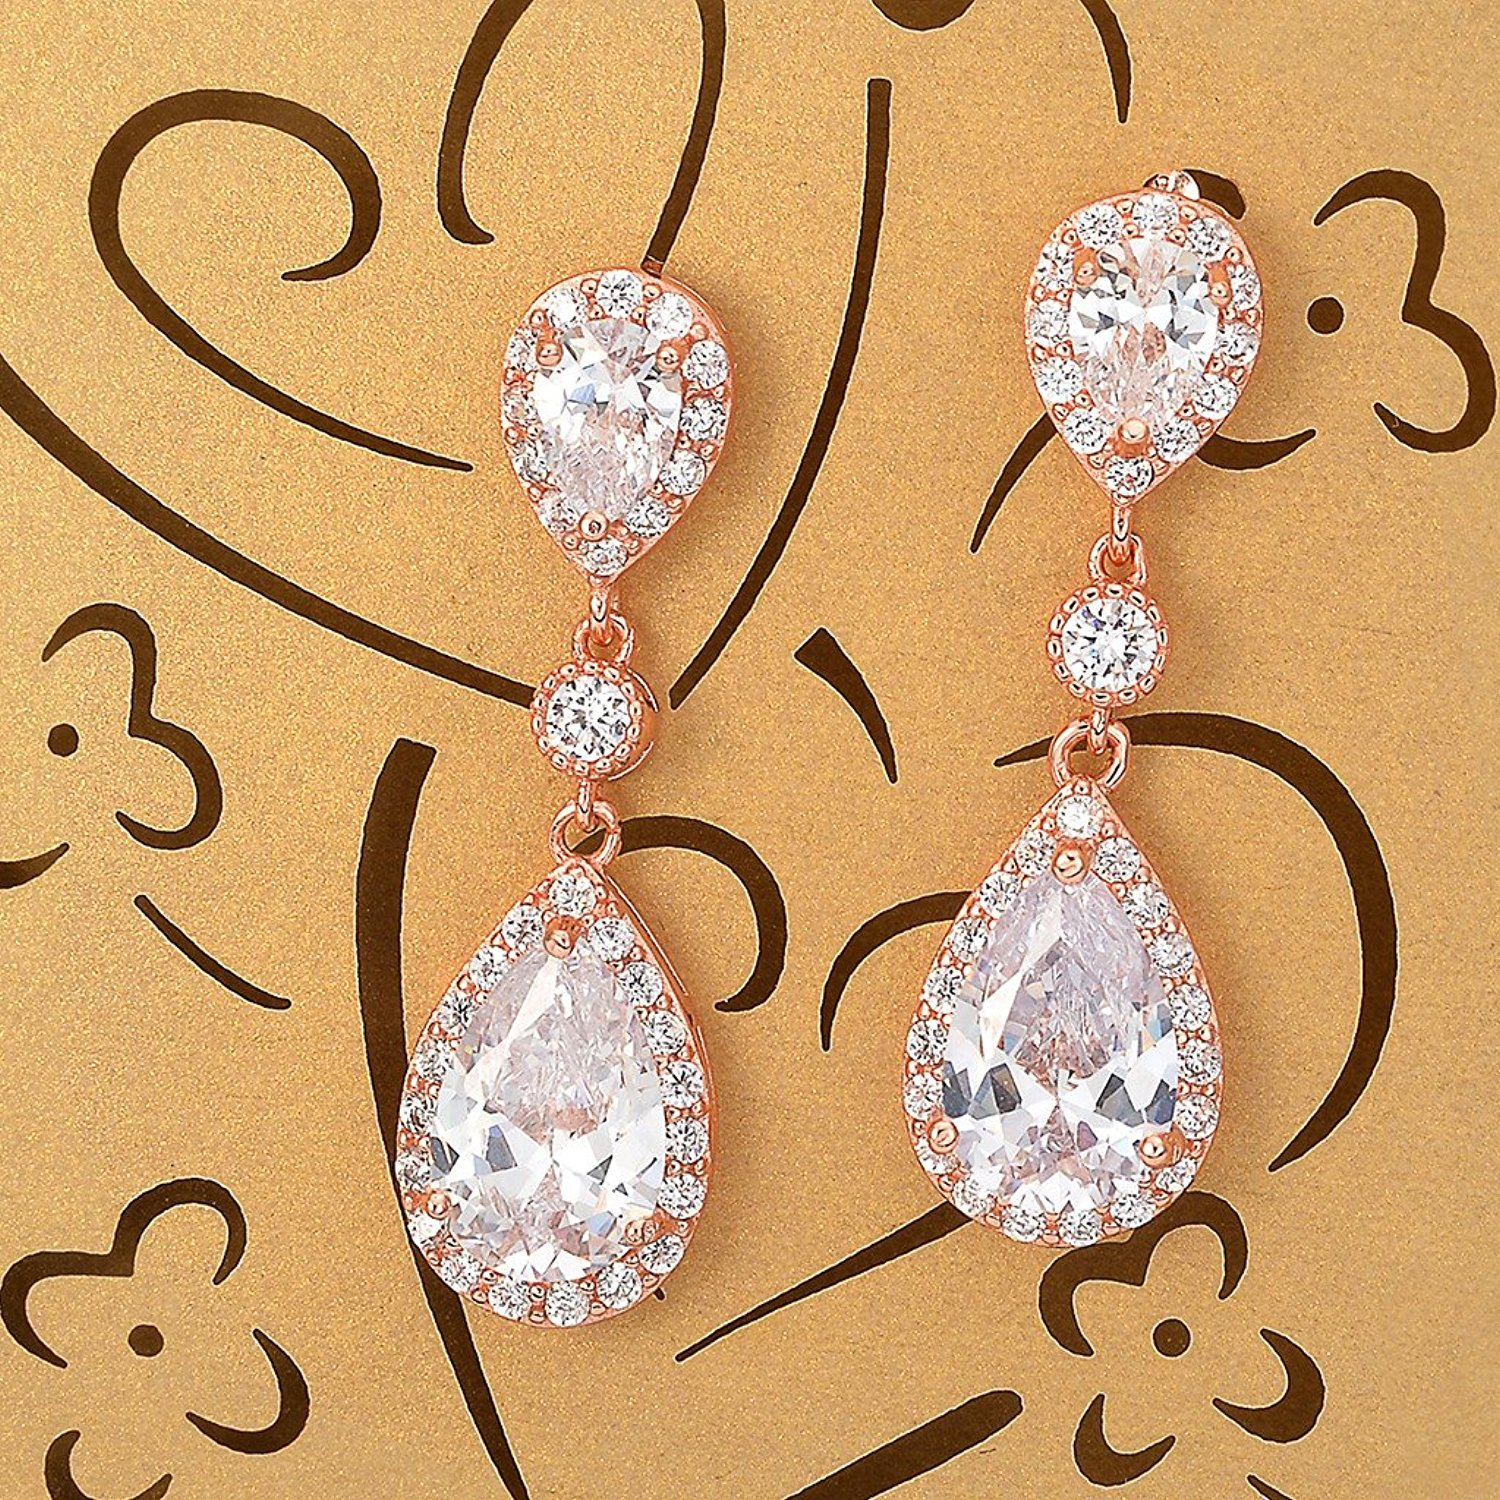 Yangle0520 Sterling Silver Drop Earrings,Sparkly Teardrop Chandelier Earrings Fashion Stylish Elegant Design Exquisite Workmanship Wedding and Party Jewelry